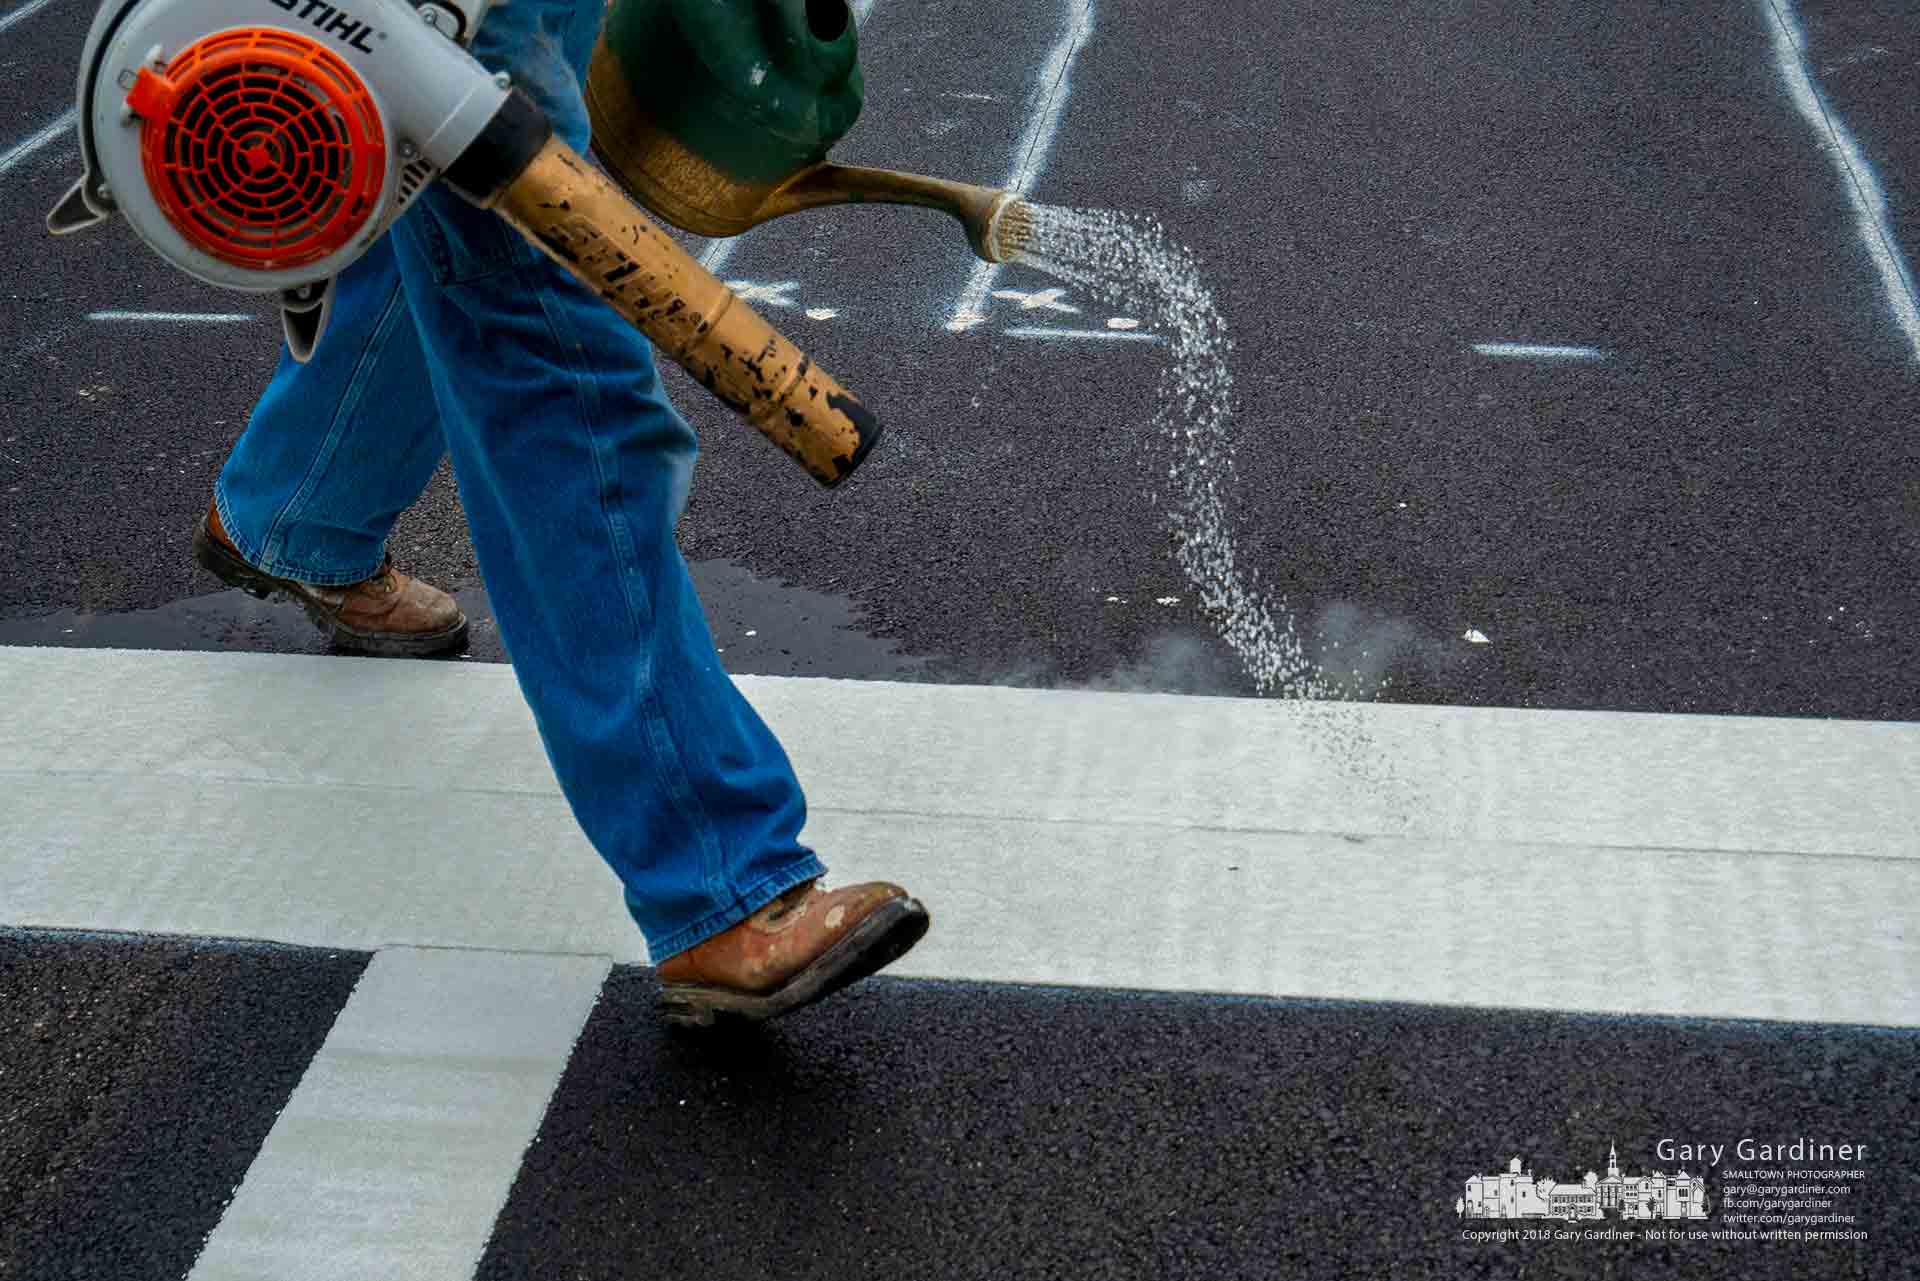 A worker blows away debris and dumps water on fresh striping applied to the new asphalt on Huber Village Blvd. and Allview as resurfacing and curb repairs nears completion. My Final Photo for June 21, 2018.